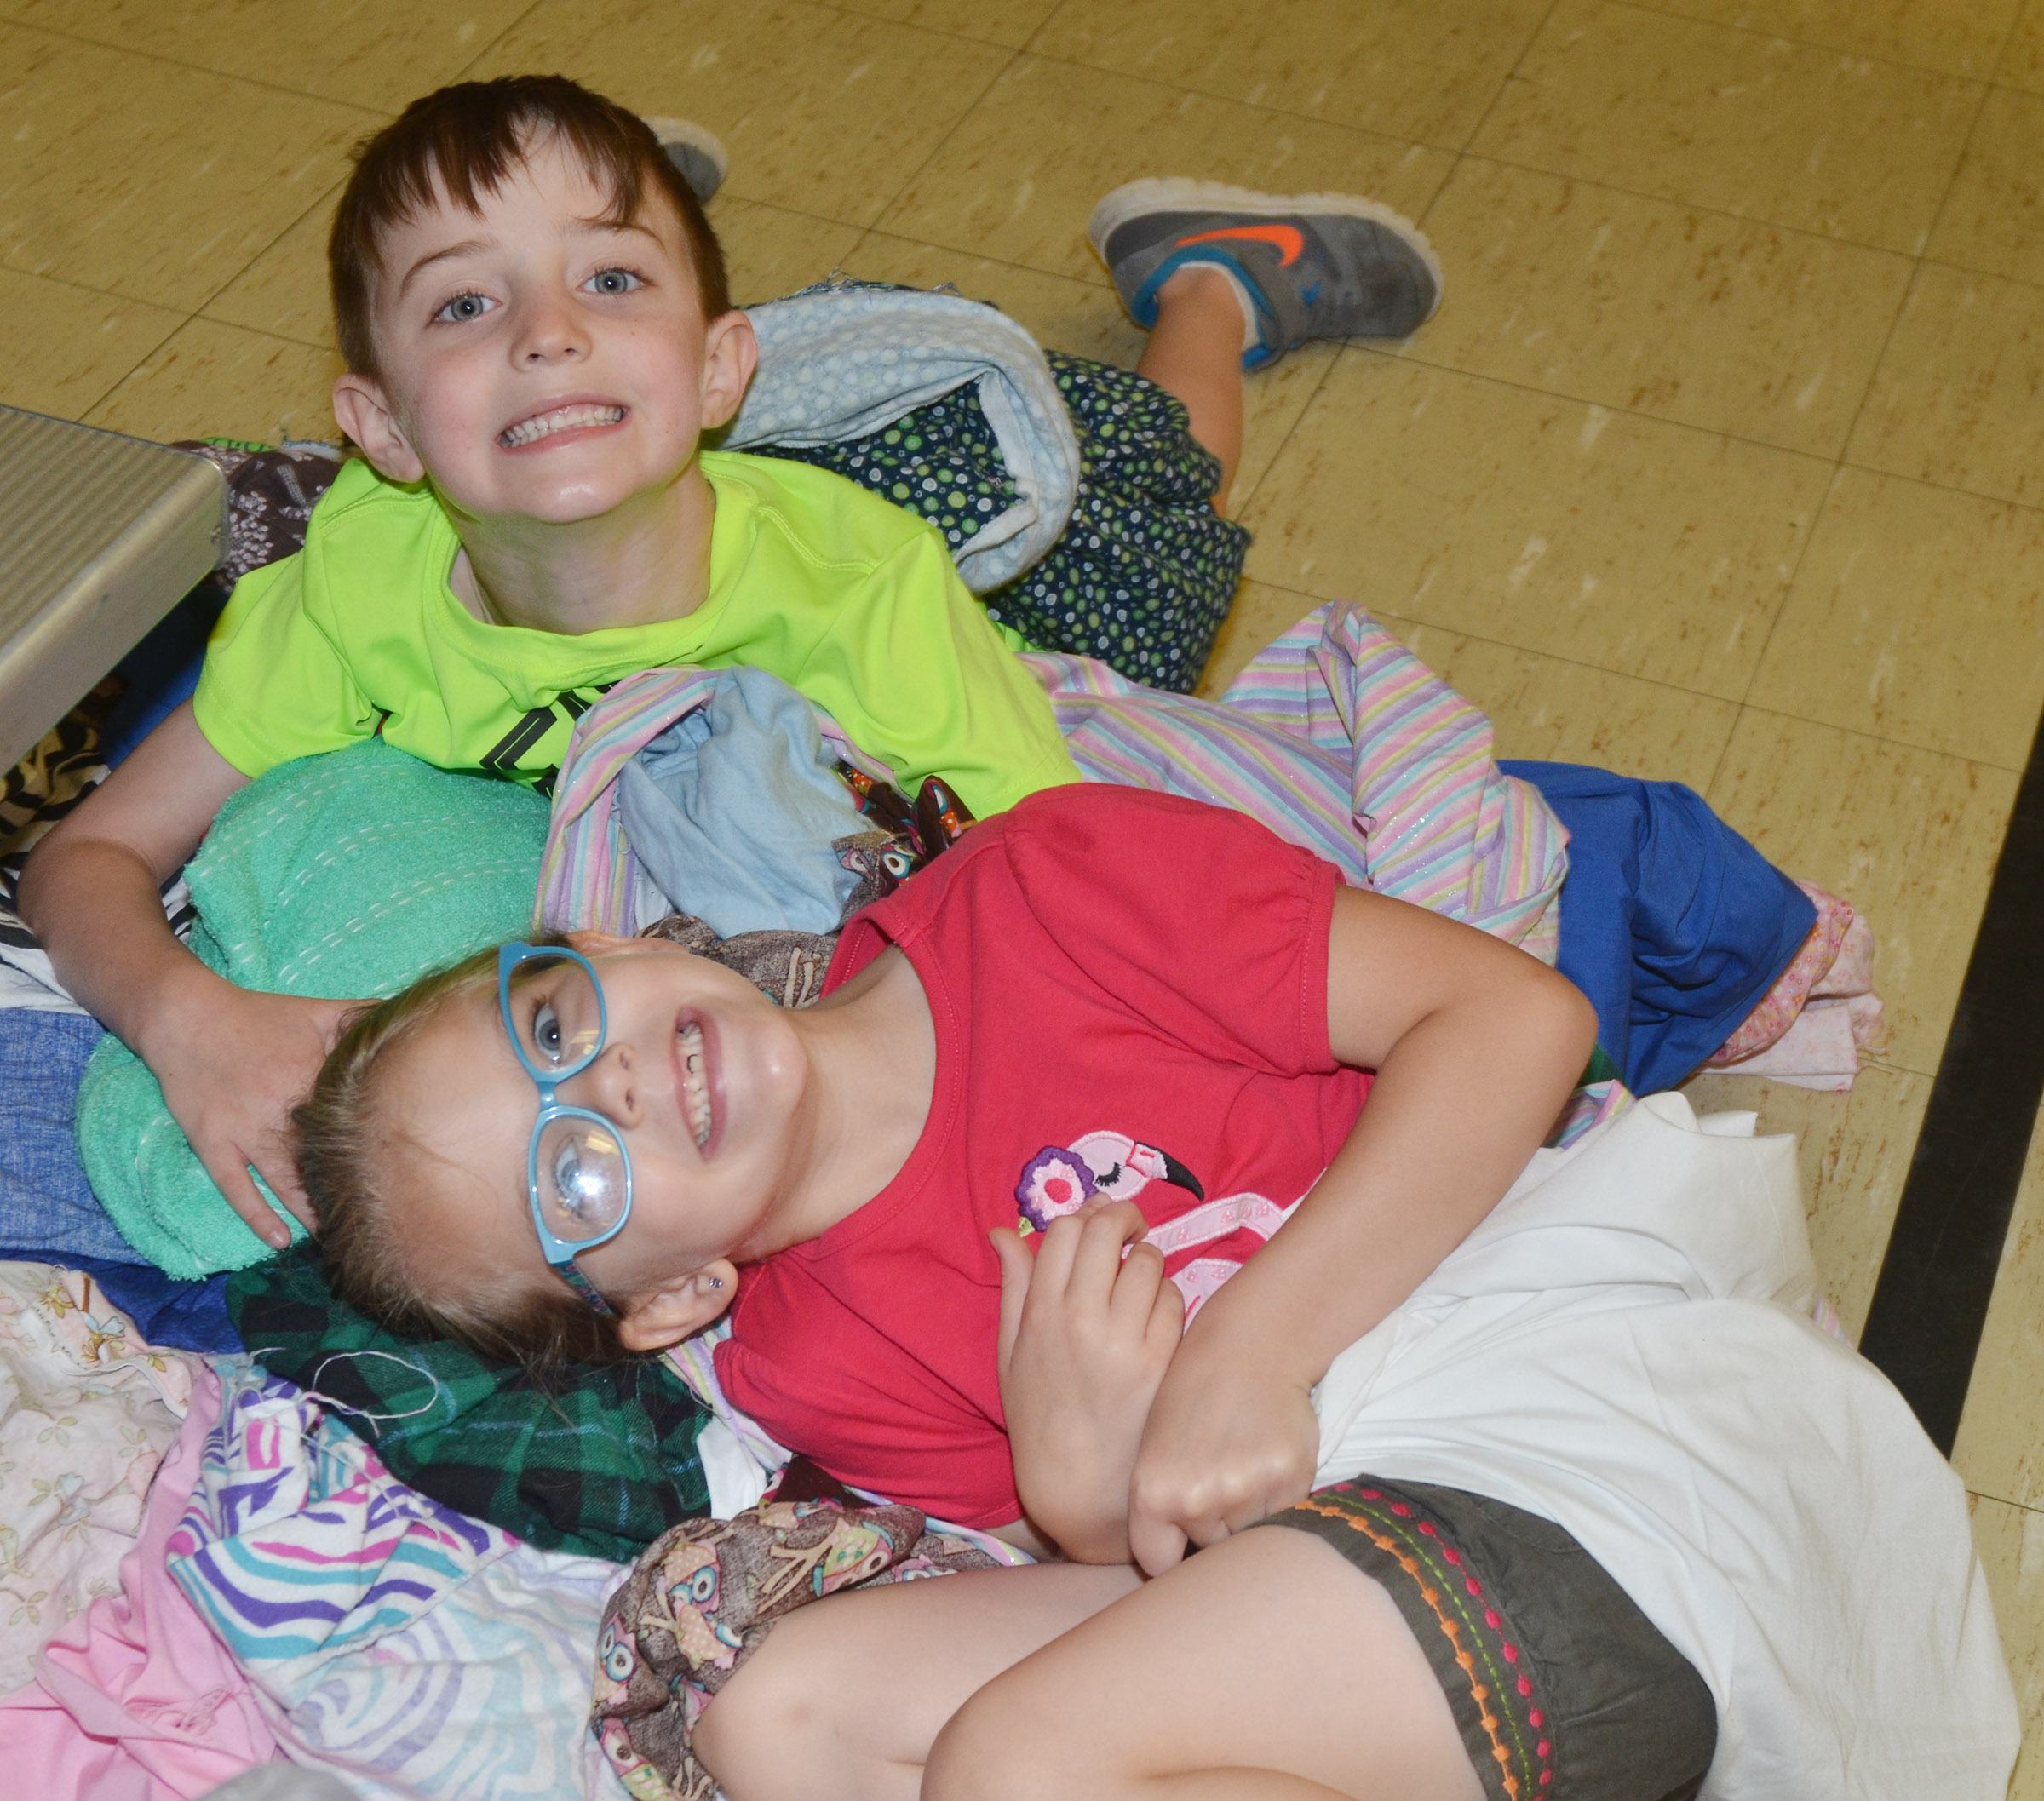 CES kindergarteners Caleb Goodson and Zoe Weddle get comfortable in a pile of bedsheets as they get set to read together.